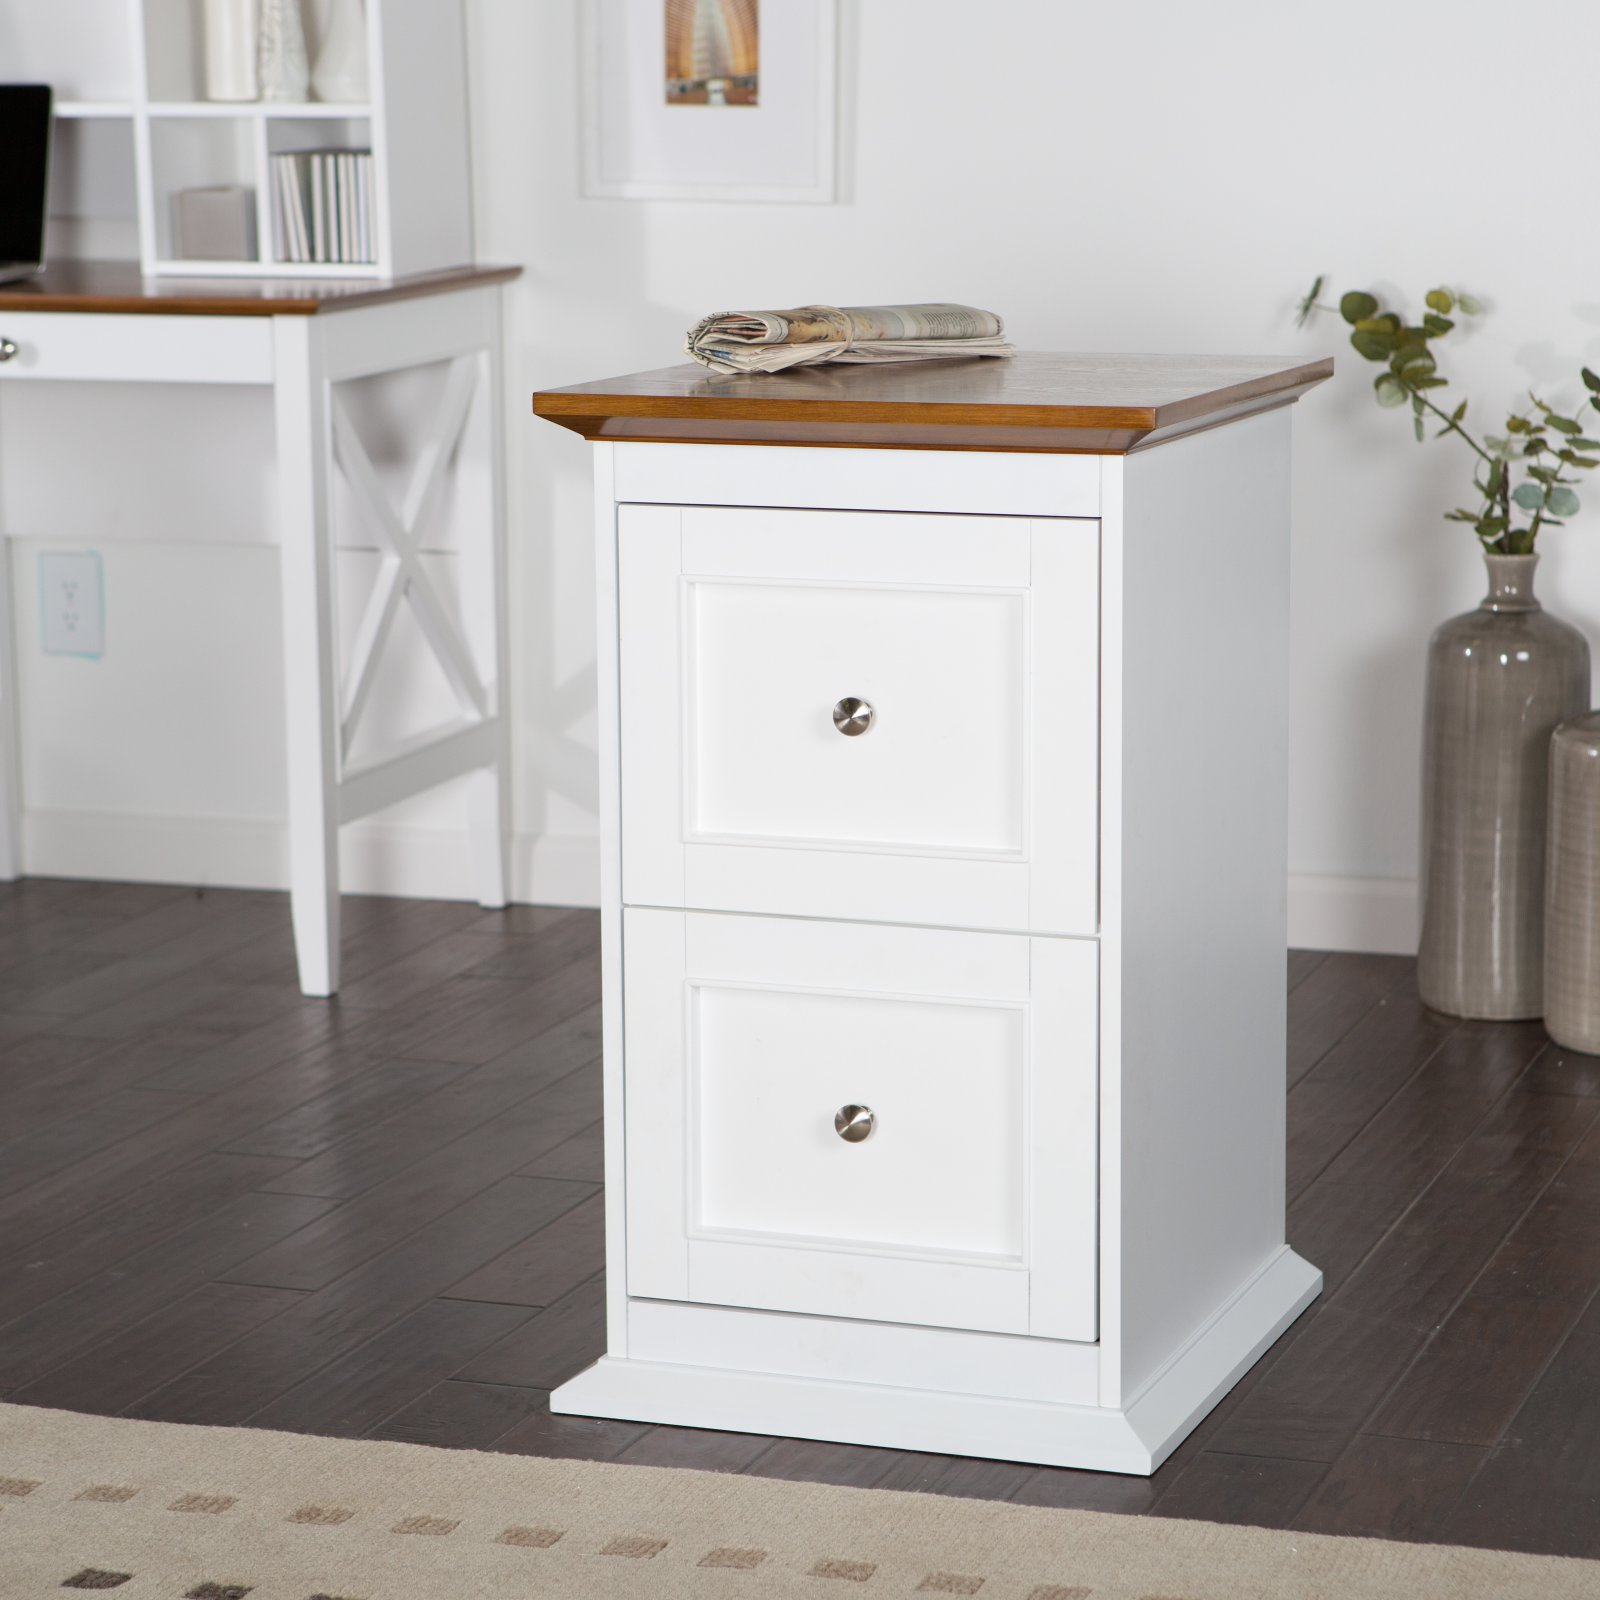 Belham Living Hampton 2 Drawer Wood File Cabinet Whiteoak intended for sizing 1600 X 1600